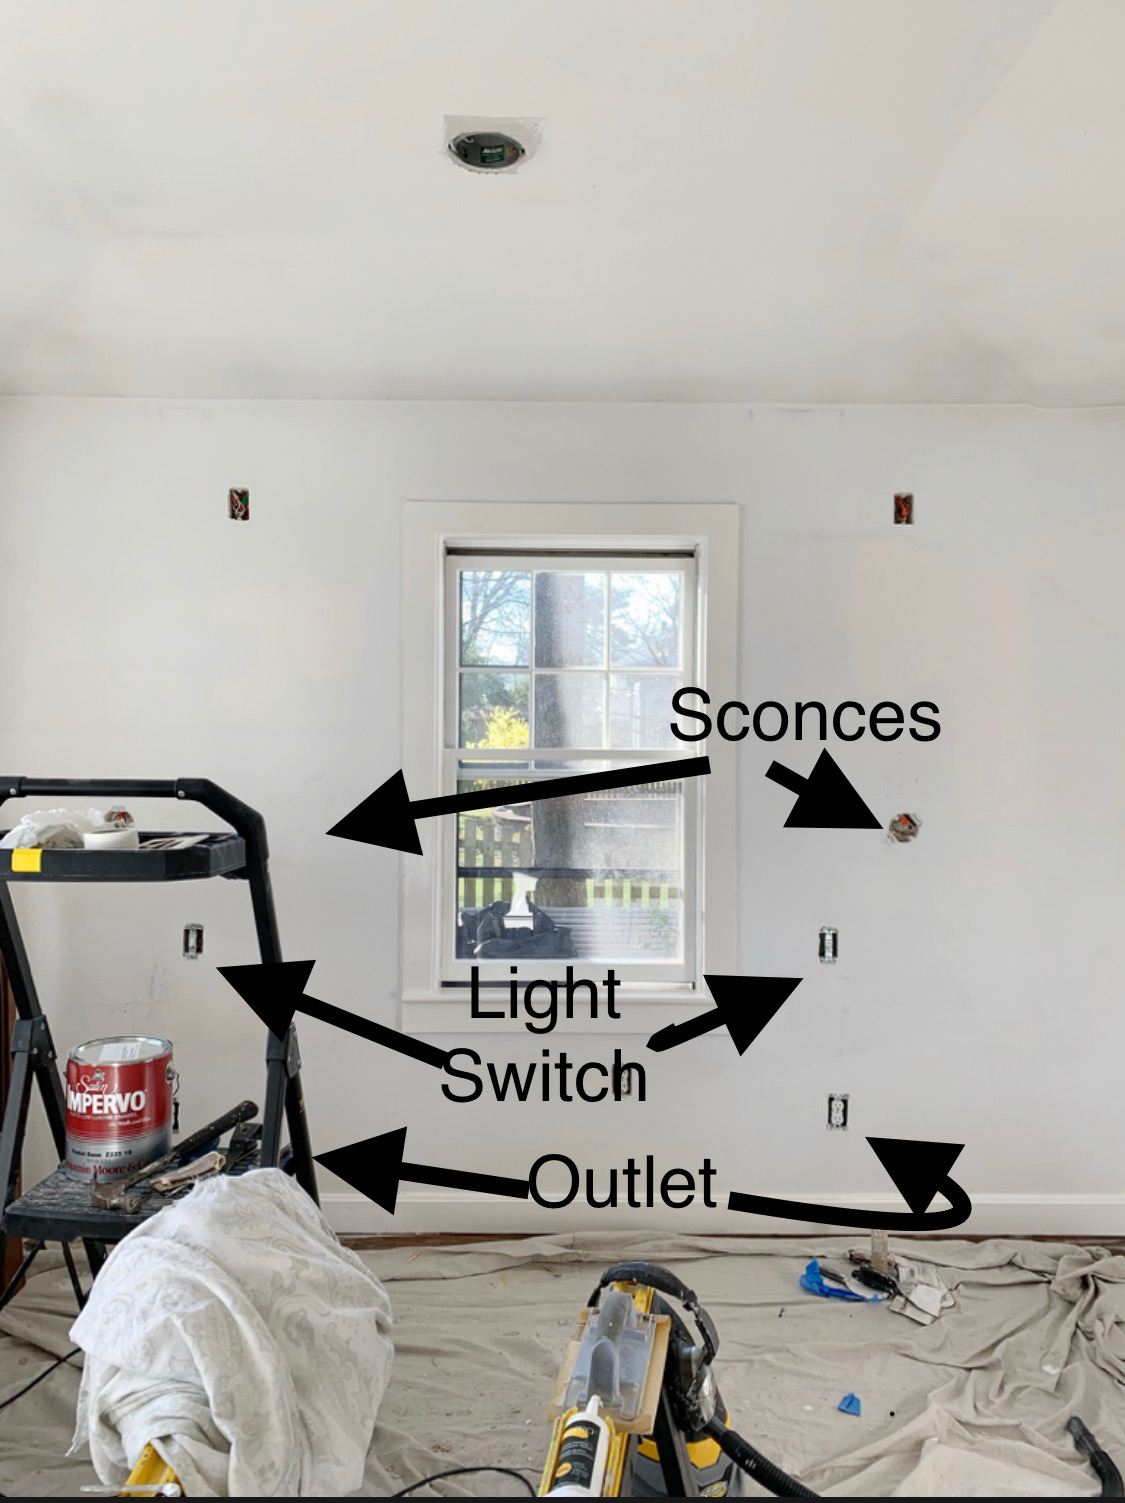 Sorry for the painting equipment blocking the view! But this gives you an idea of where we located the electrical in relation to where the bed will go.